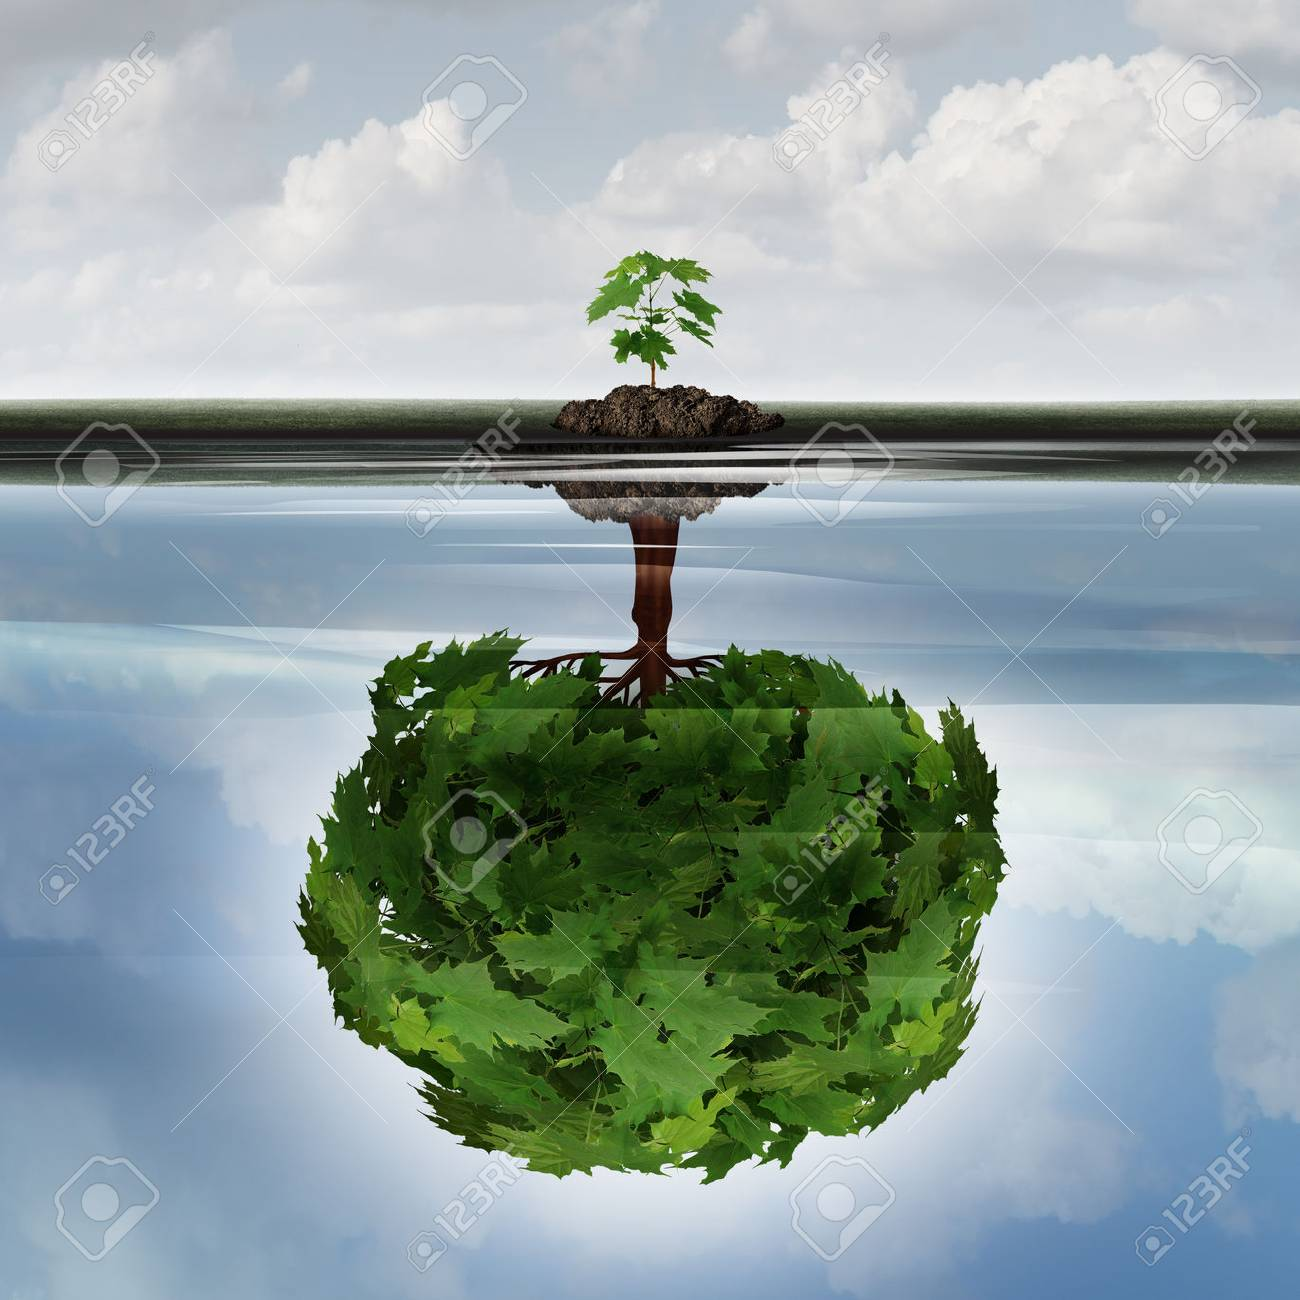 Potential success concept as a symbol for aspiration philosophy idea and determined growth motivation icon as a small young sappling making a reflection of a mature large tree in the water with 3D illustration elements. - 63825900